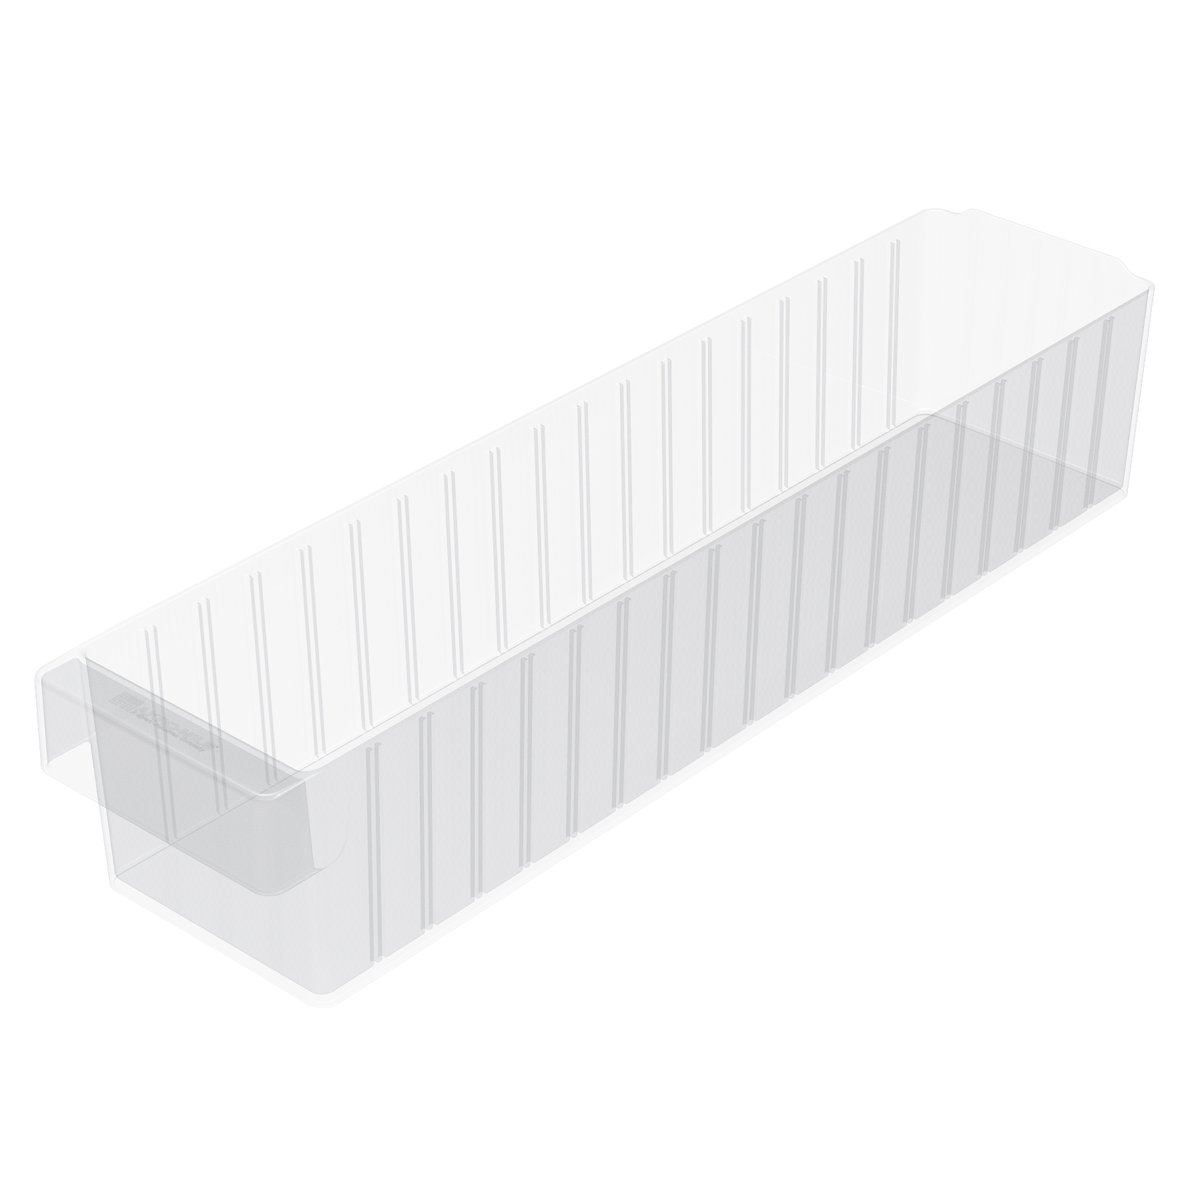 Akro-Mils 31164 23-7/8-Inch L by 5-9/16-Inch W by 4-5/8-Inch H AkroDrawer Plastic Storage Drawer, Crystal Clear, Case of 6